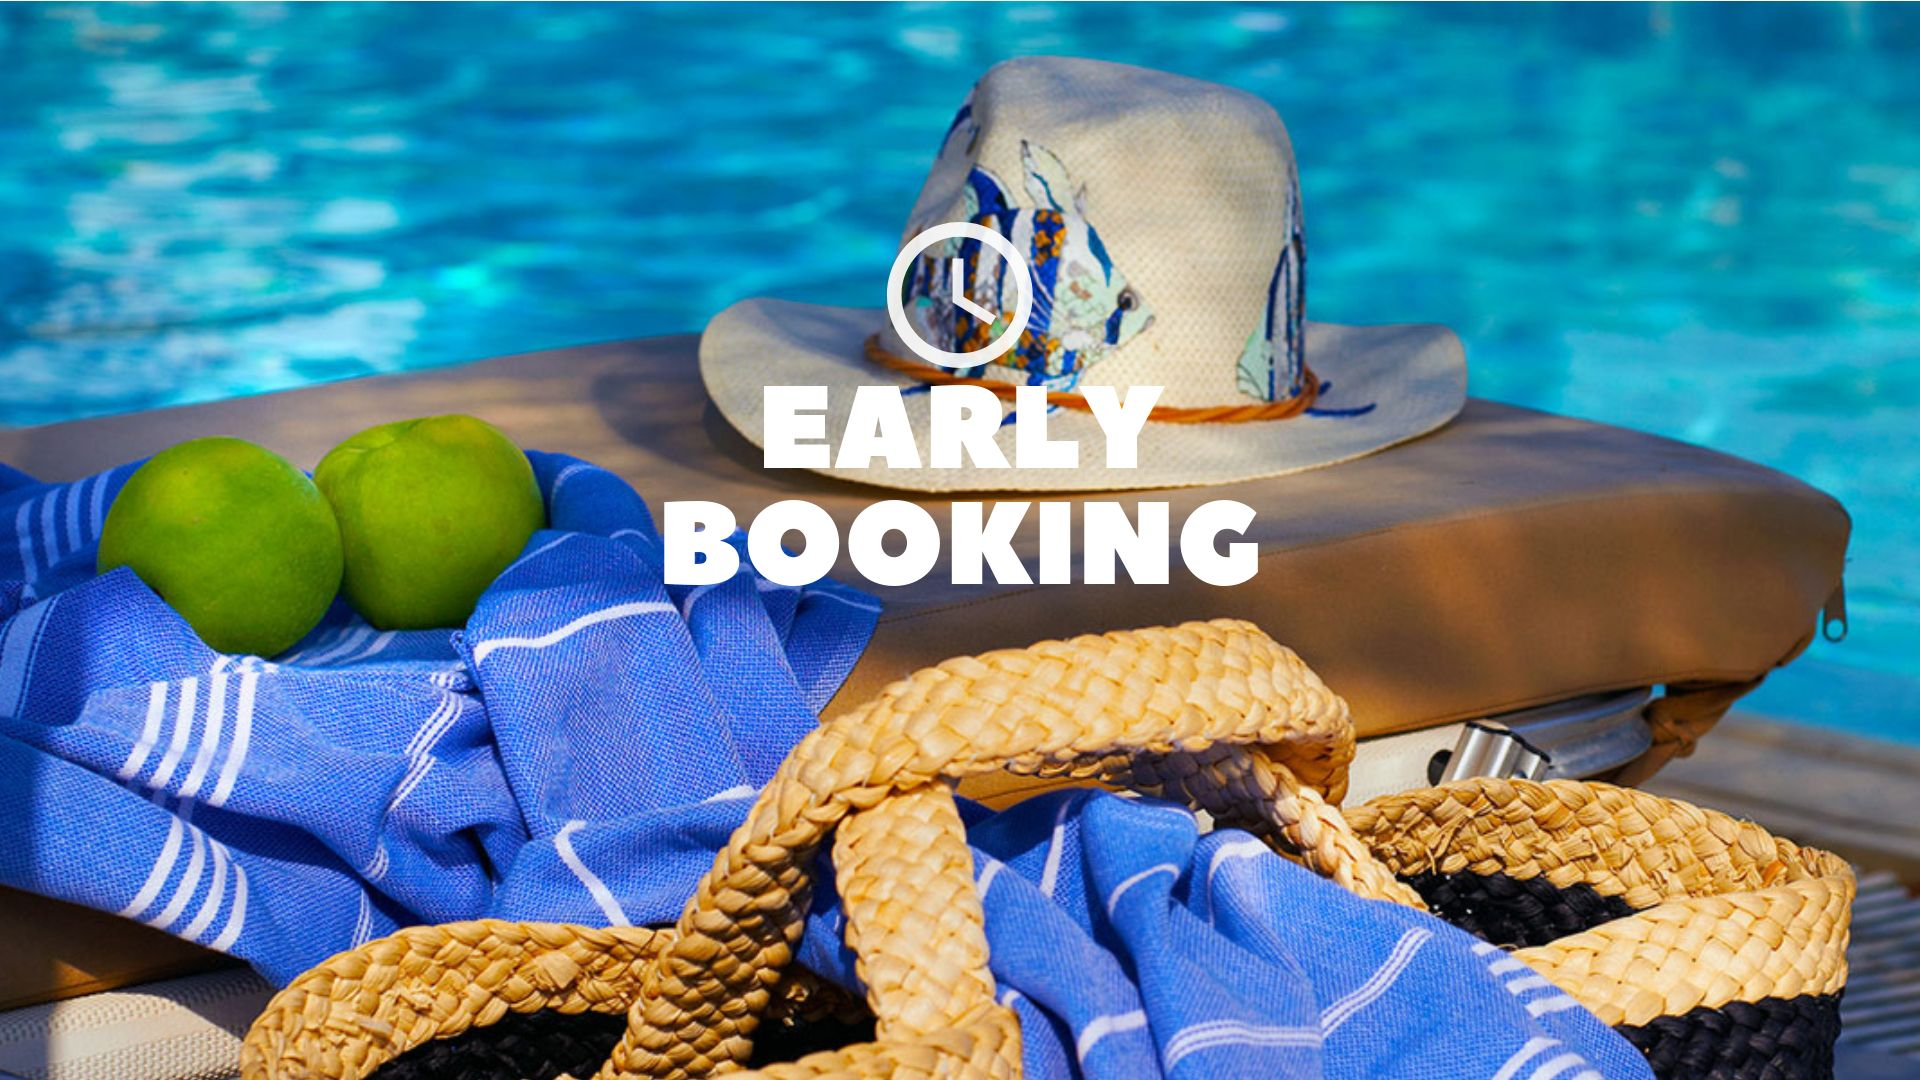 EARLY BOOKING OFFER 2019